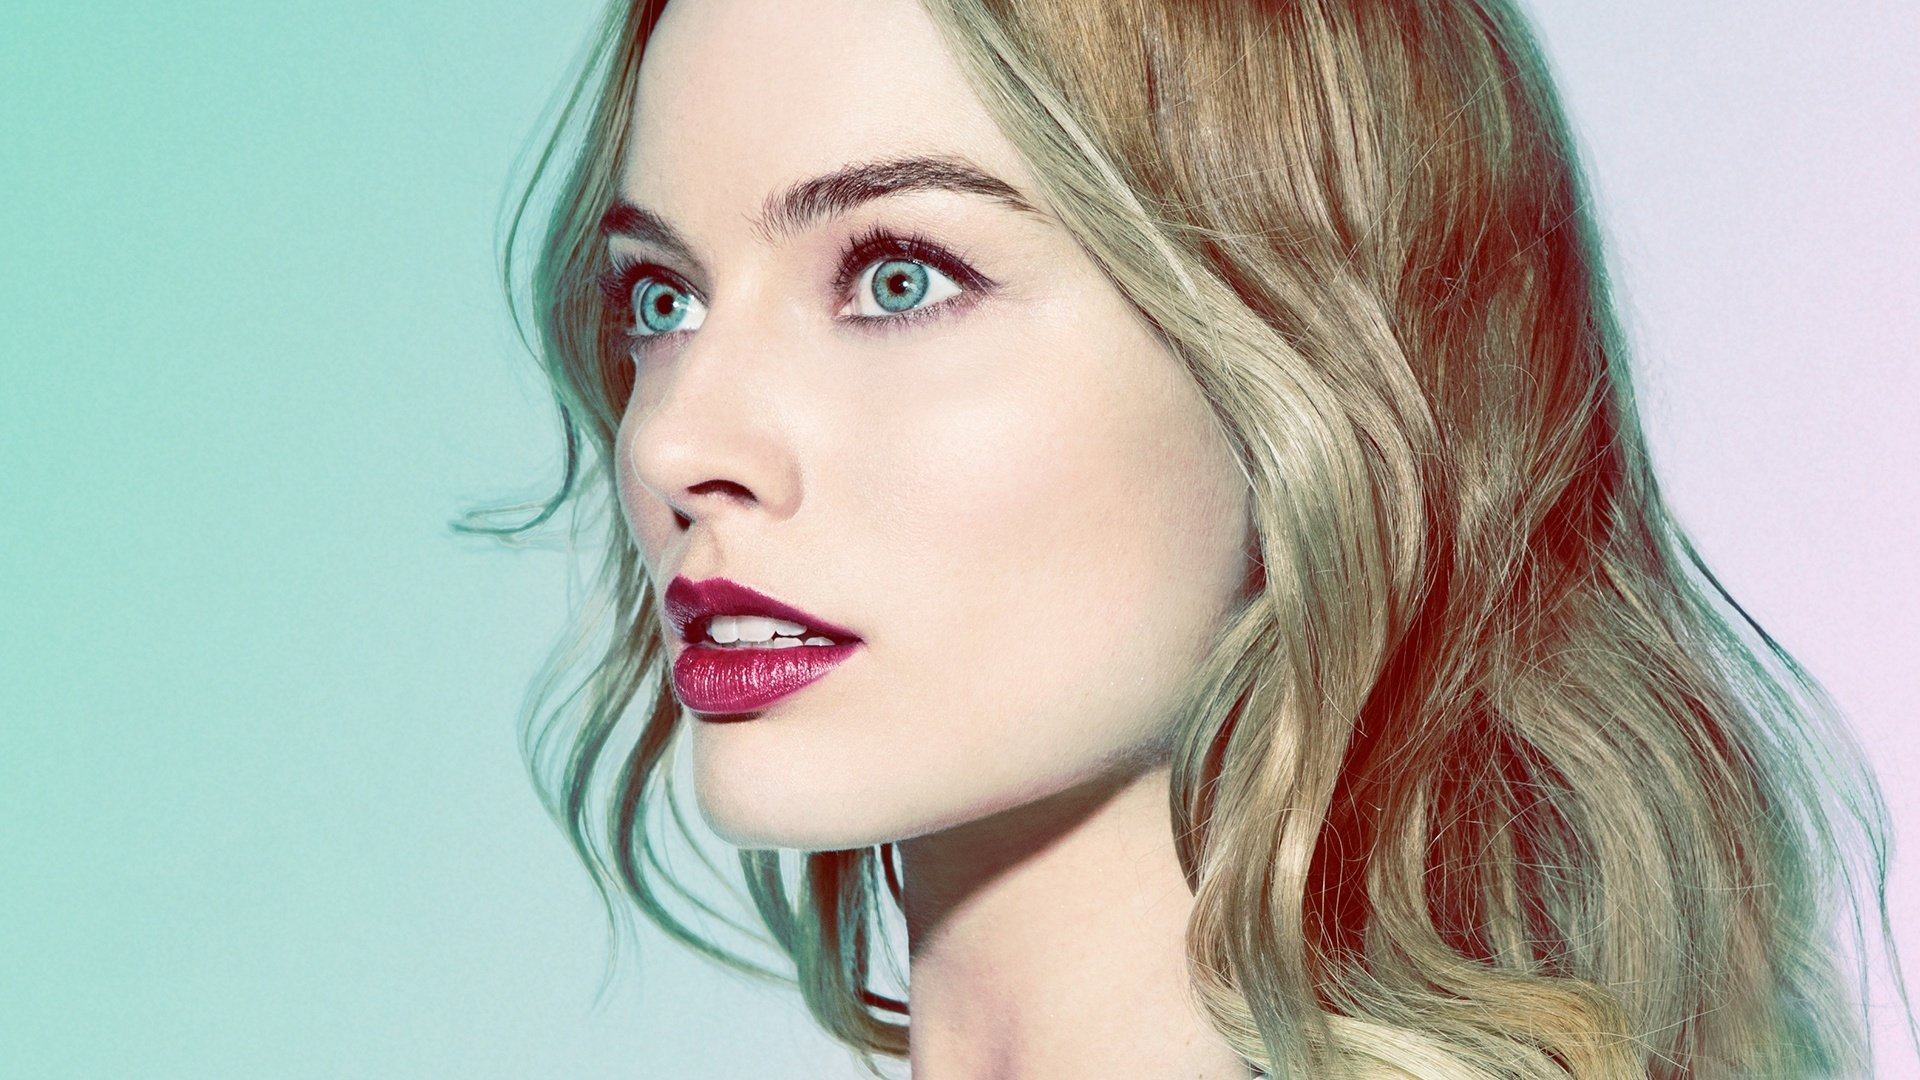 Celebrity - Margot Robbie  Actress Australian Face Blue Eyes Blonde Lipstick Wallpaper